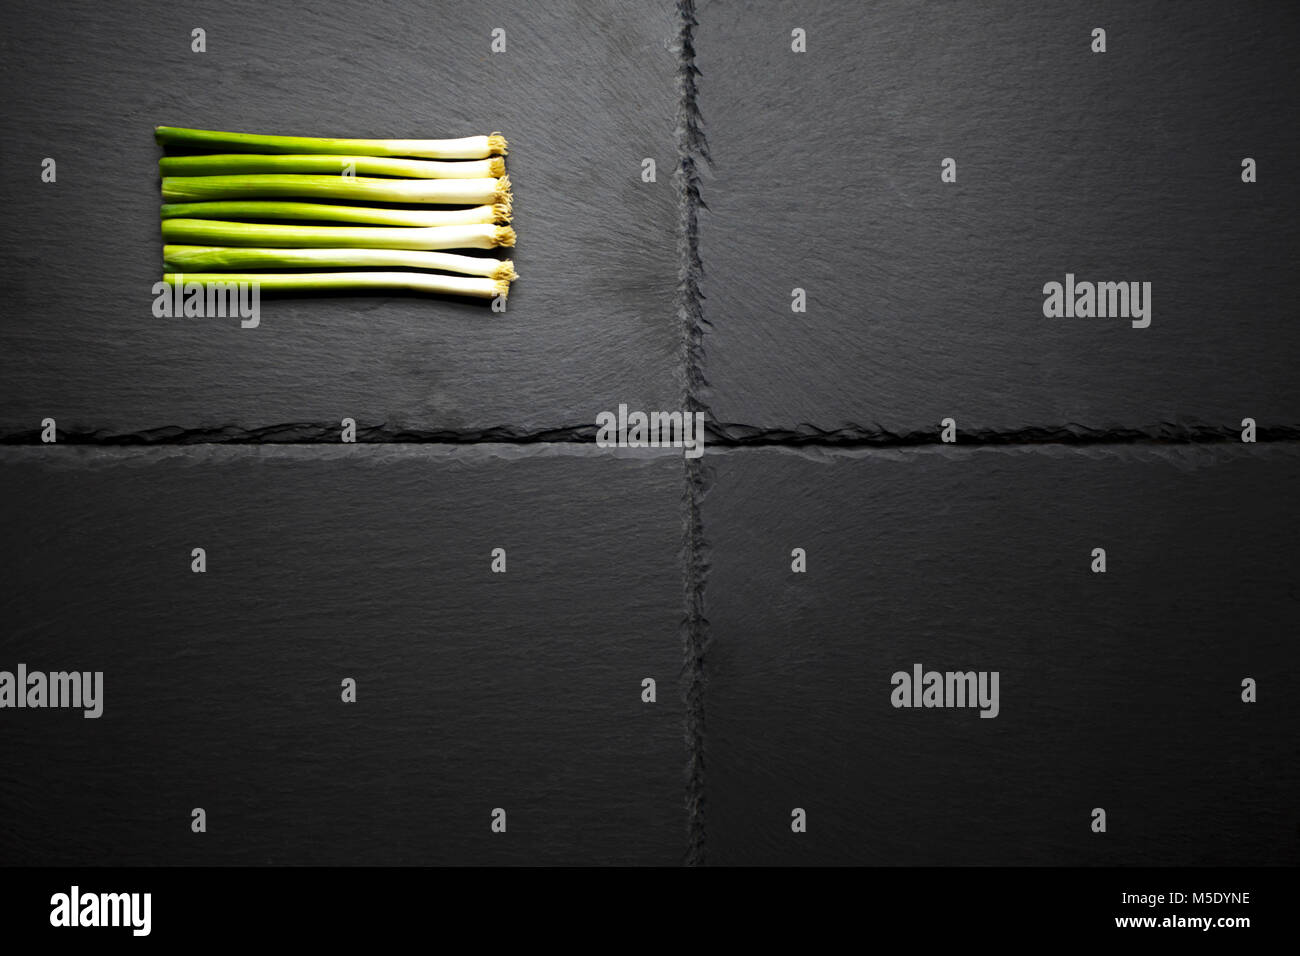 A selection of spring onions of charcoal base. Onions cut and cleaned for uniformity - Stock Image